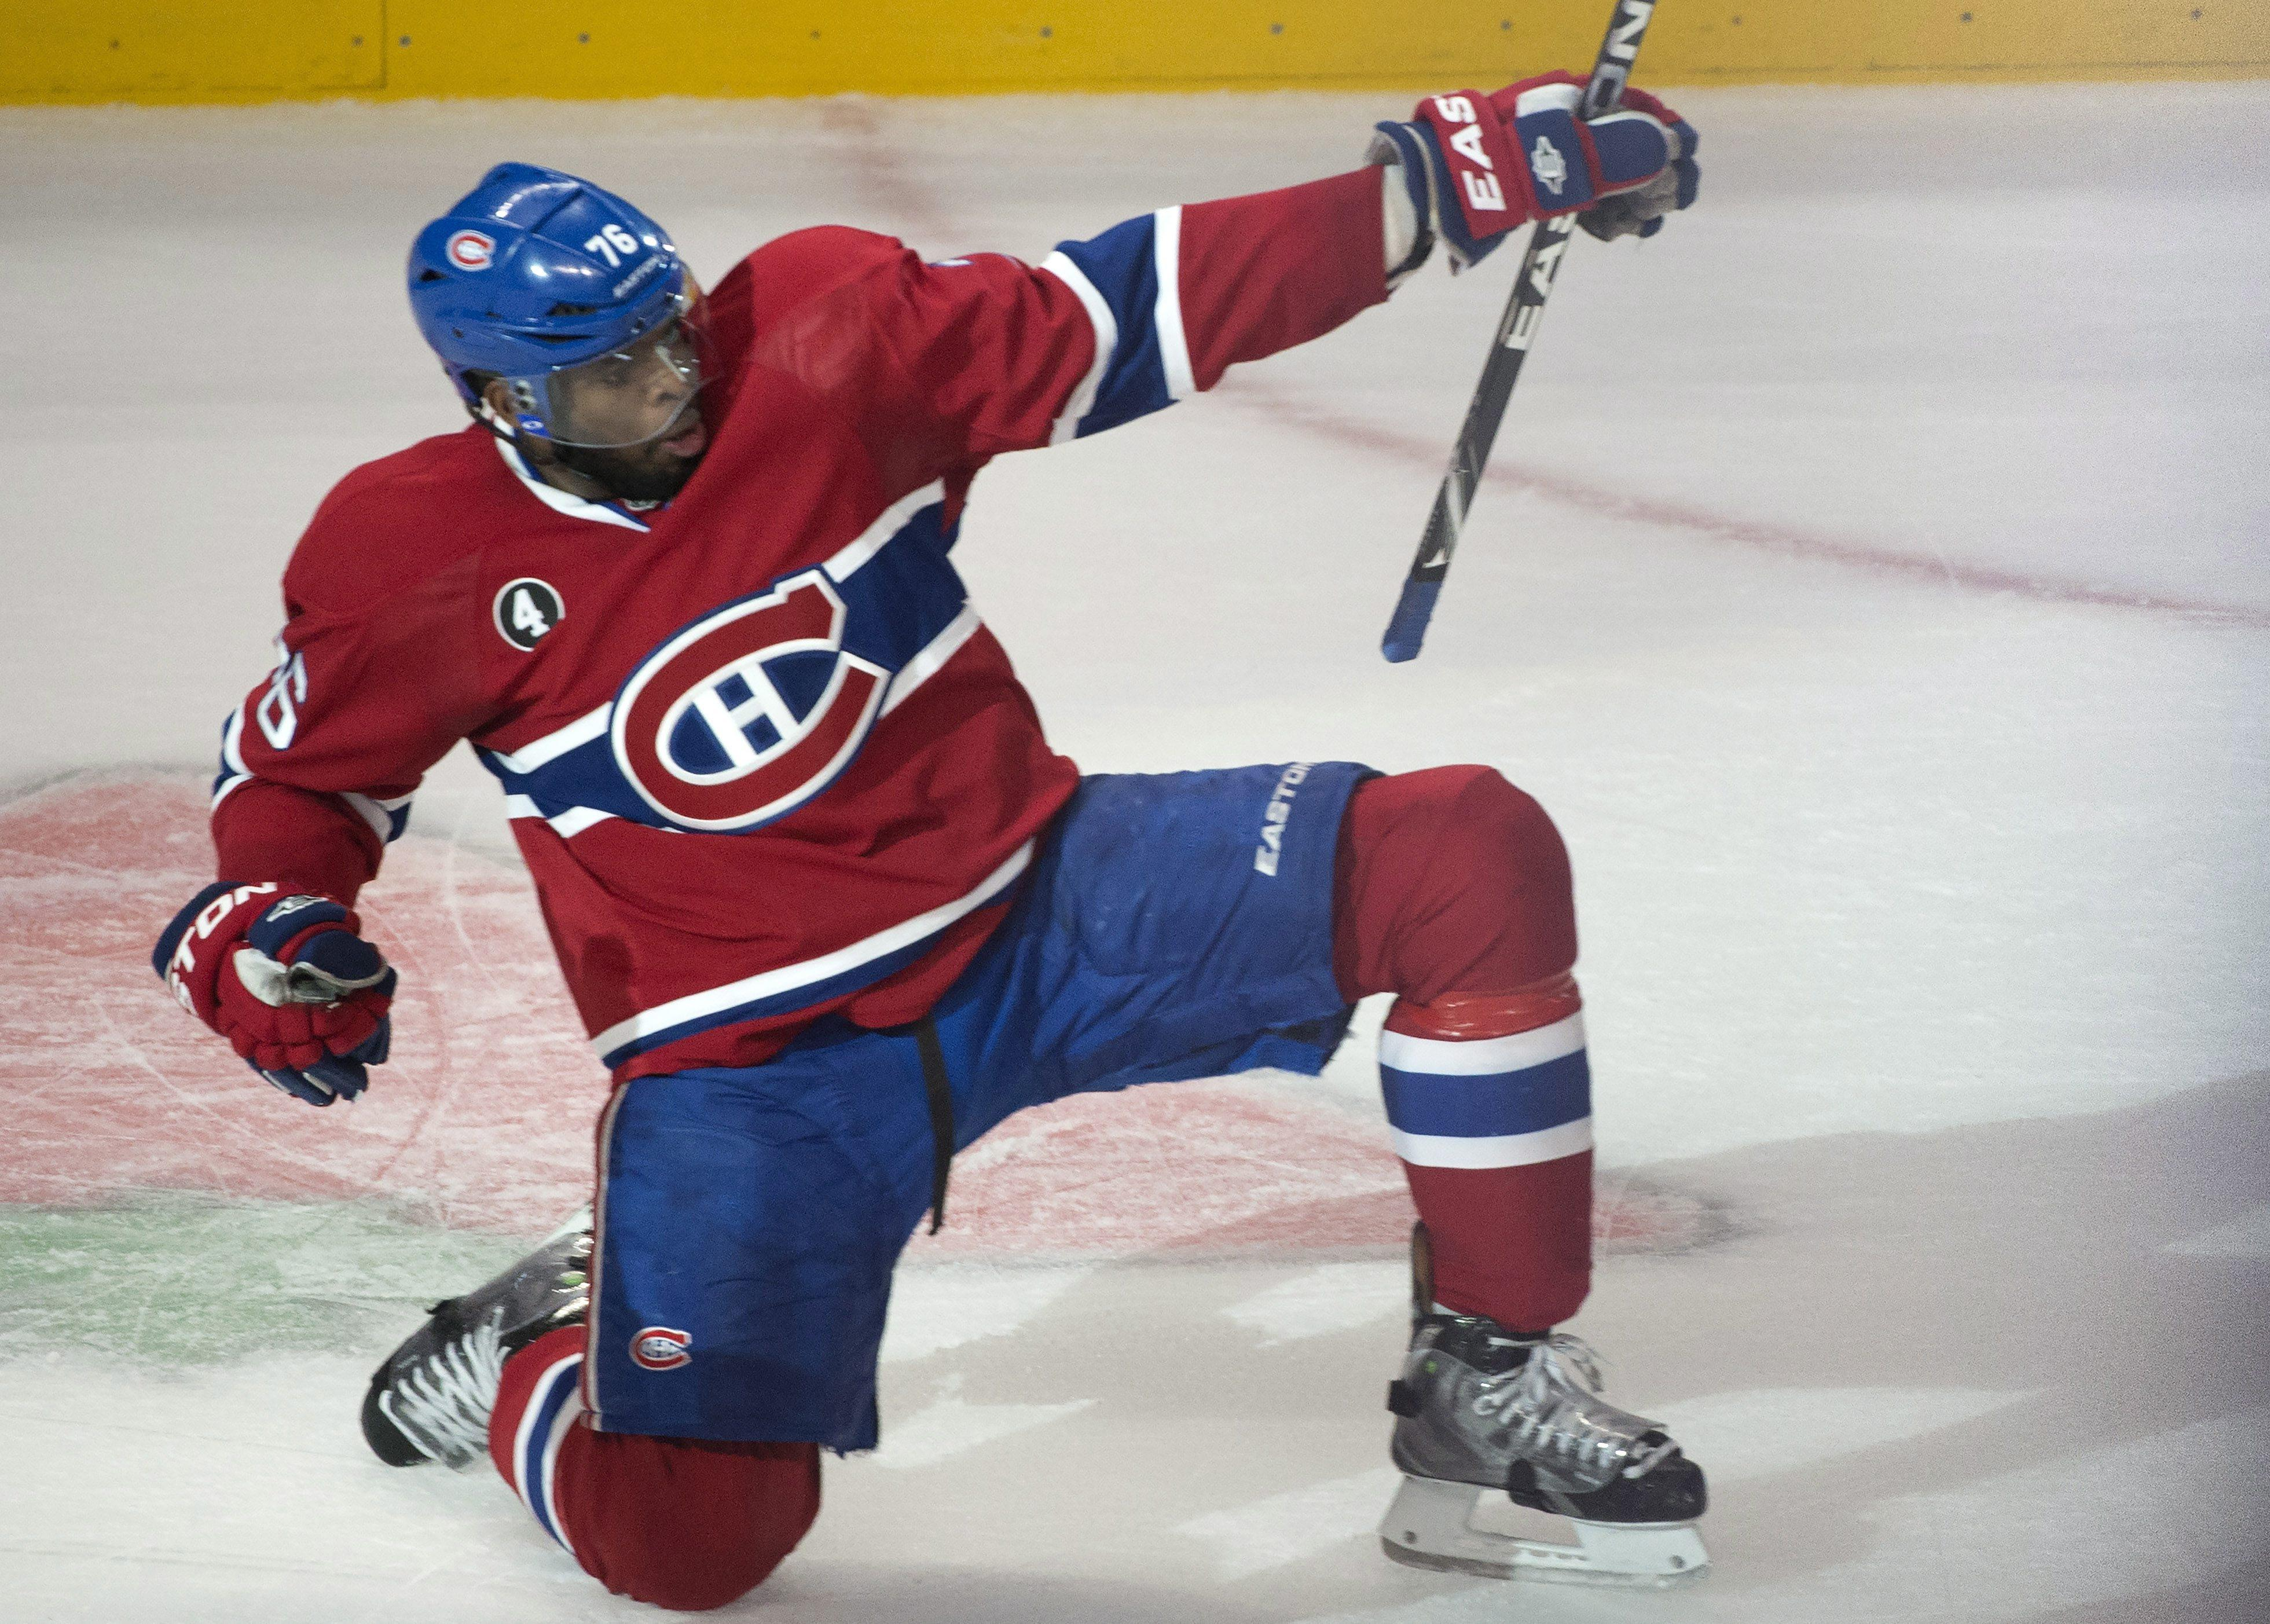 P K  Subban acquired by Predators from Canadiens for Shea Weber in     P K  Subban acquired by Predators from Canadiens for Shea Weber in blockbuster   Washington Times